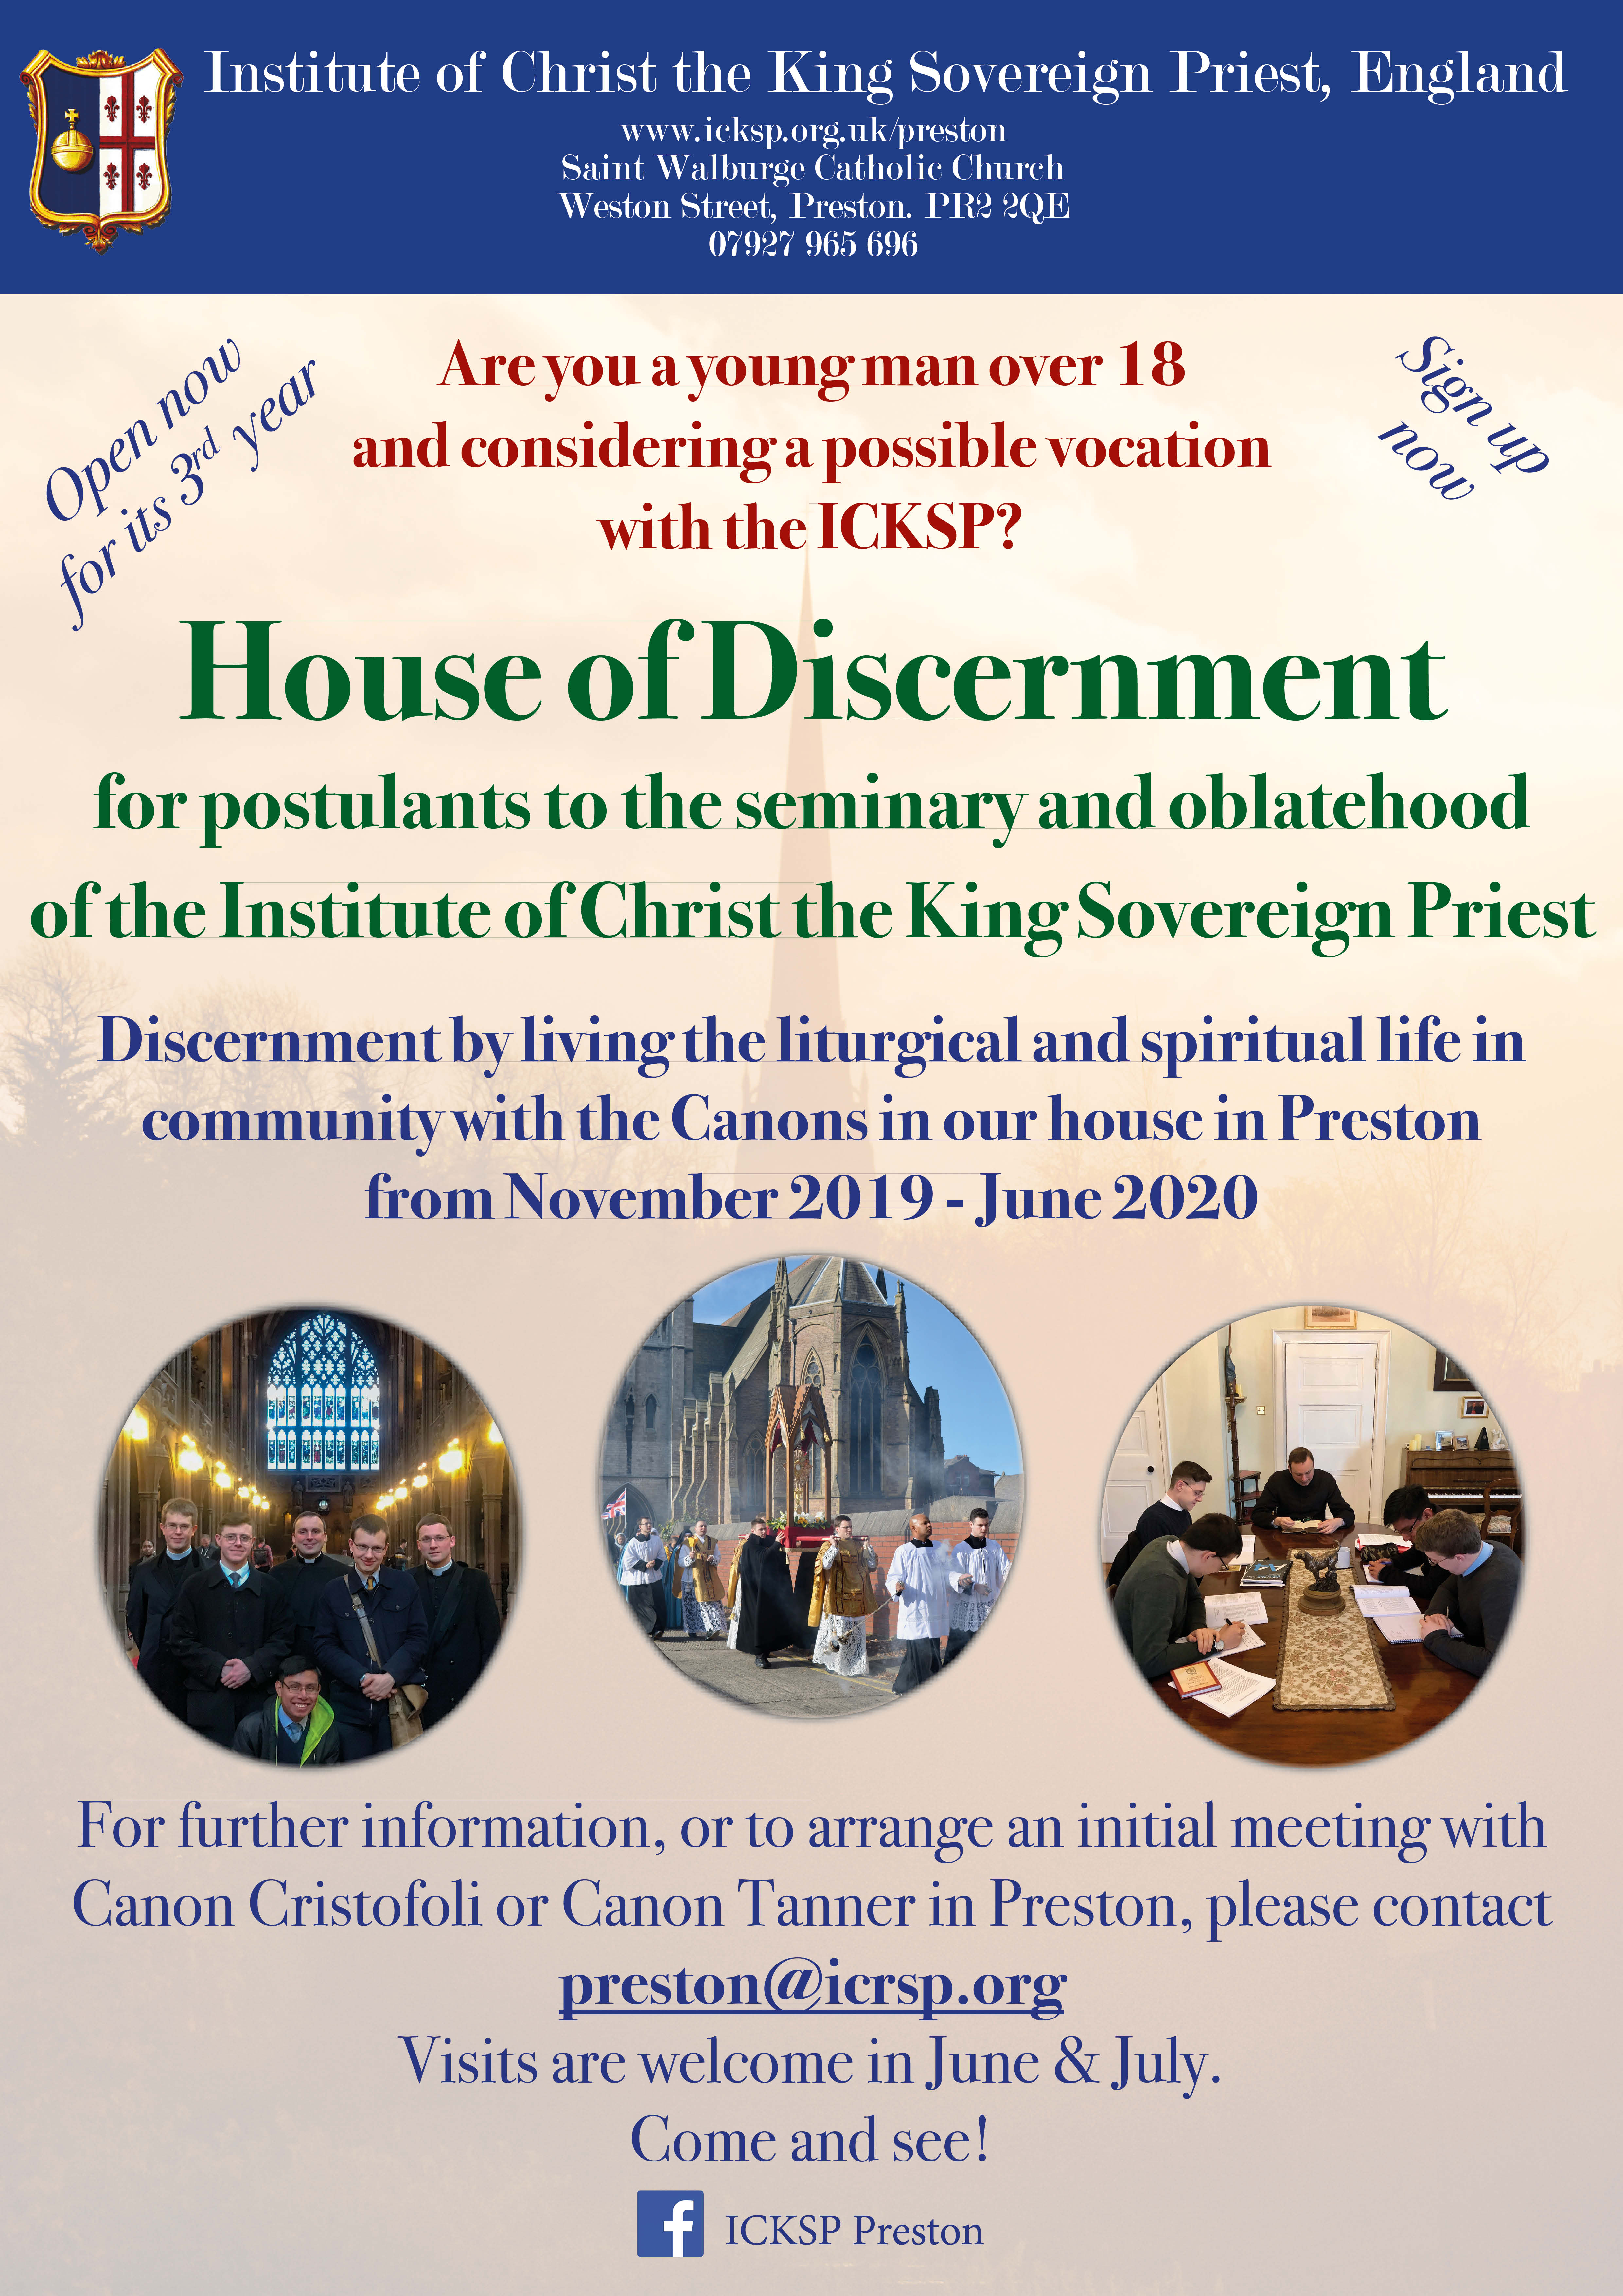 Discernment House continues for its 3rd year